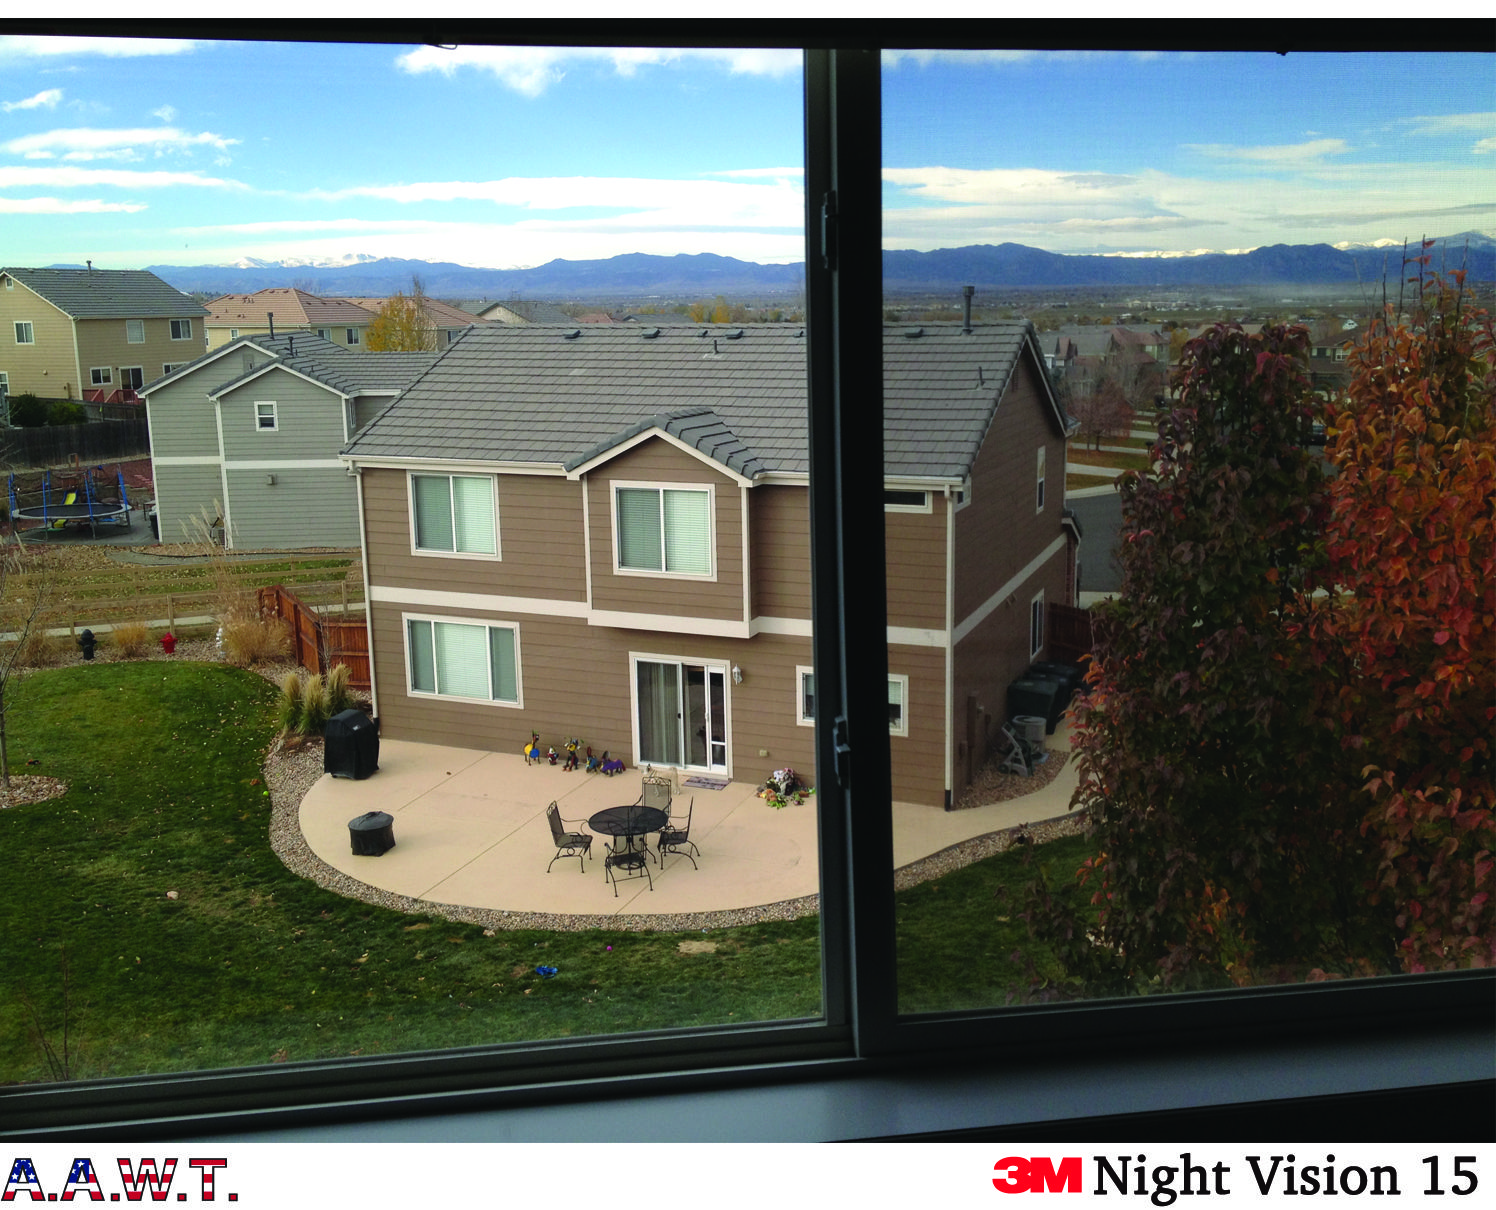 Don't block your view with curtains or blinds!